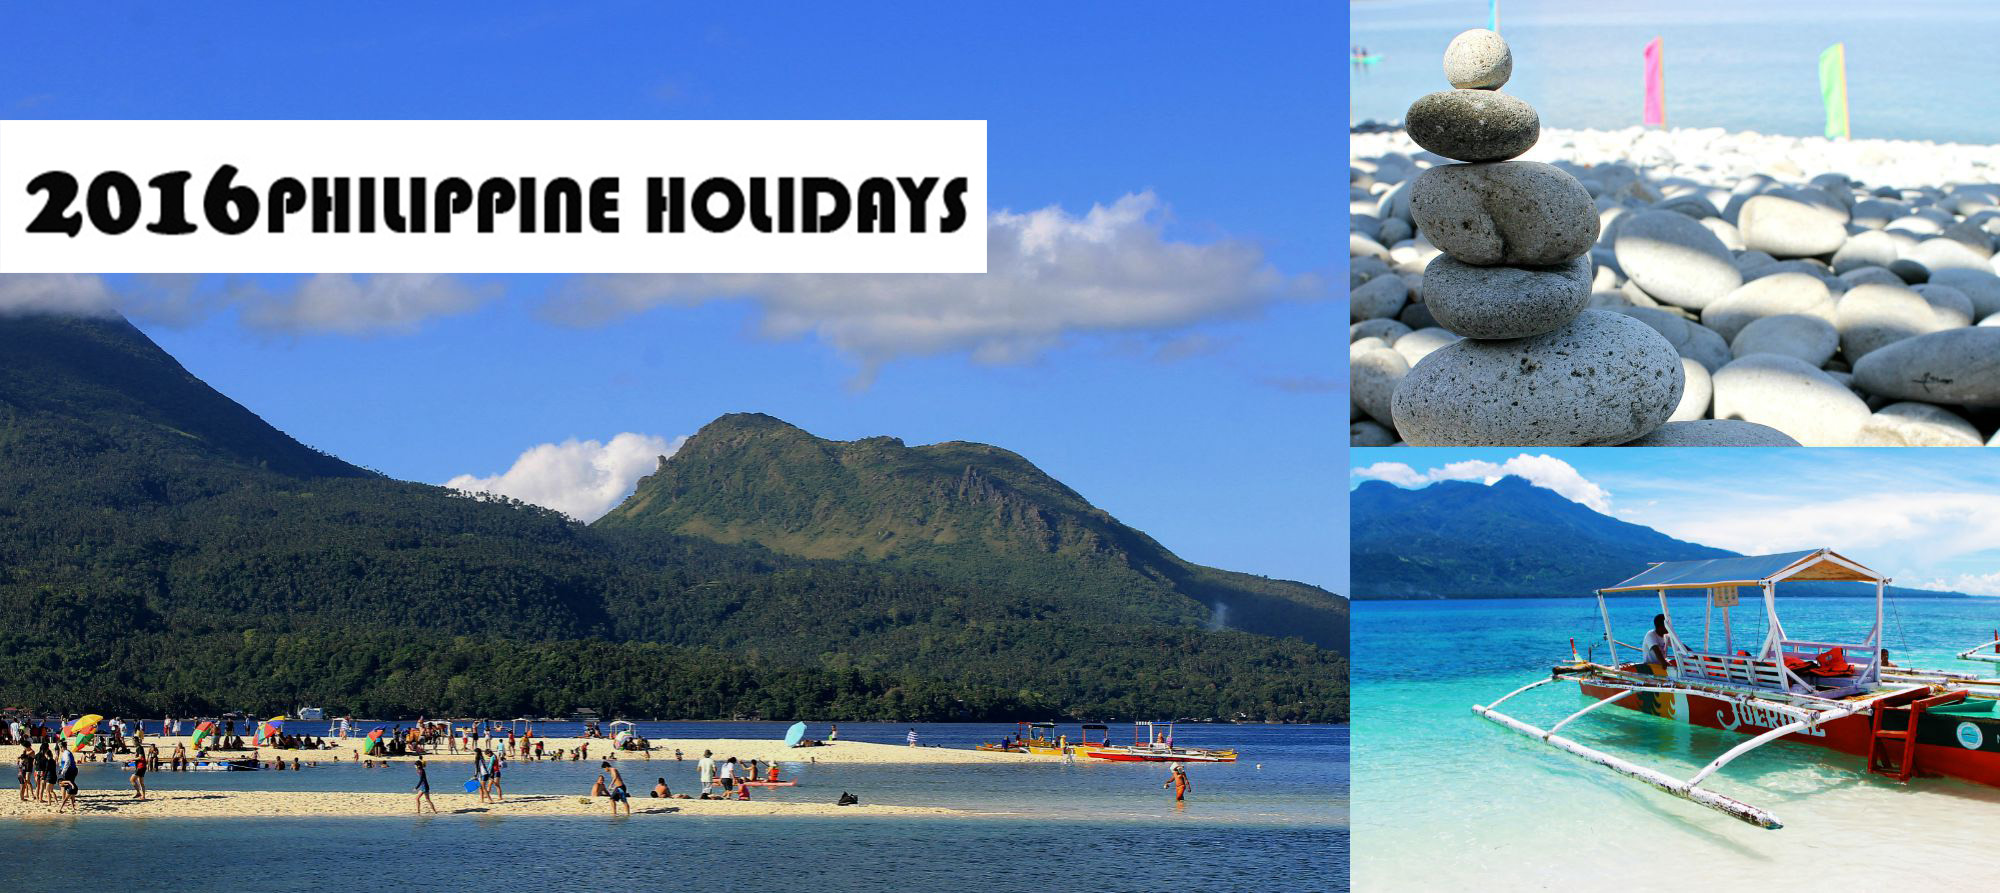 philippine holidays in 2016